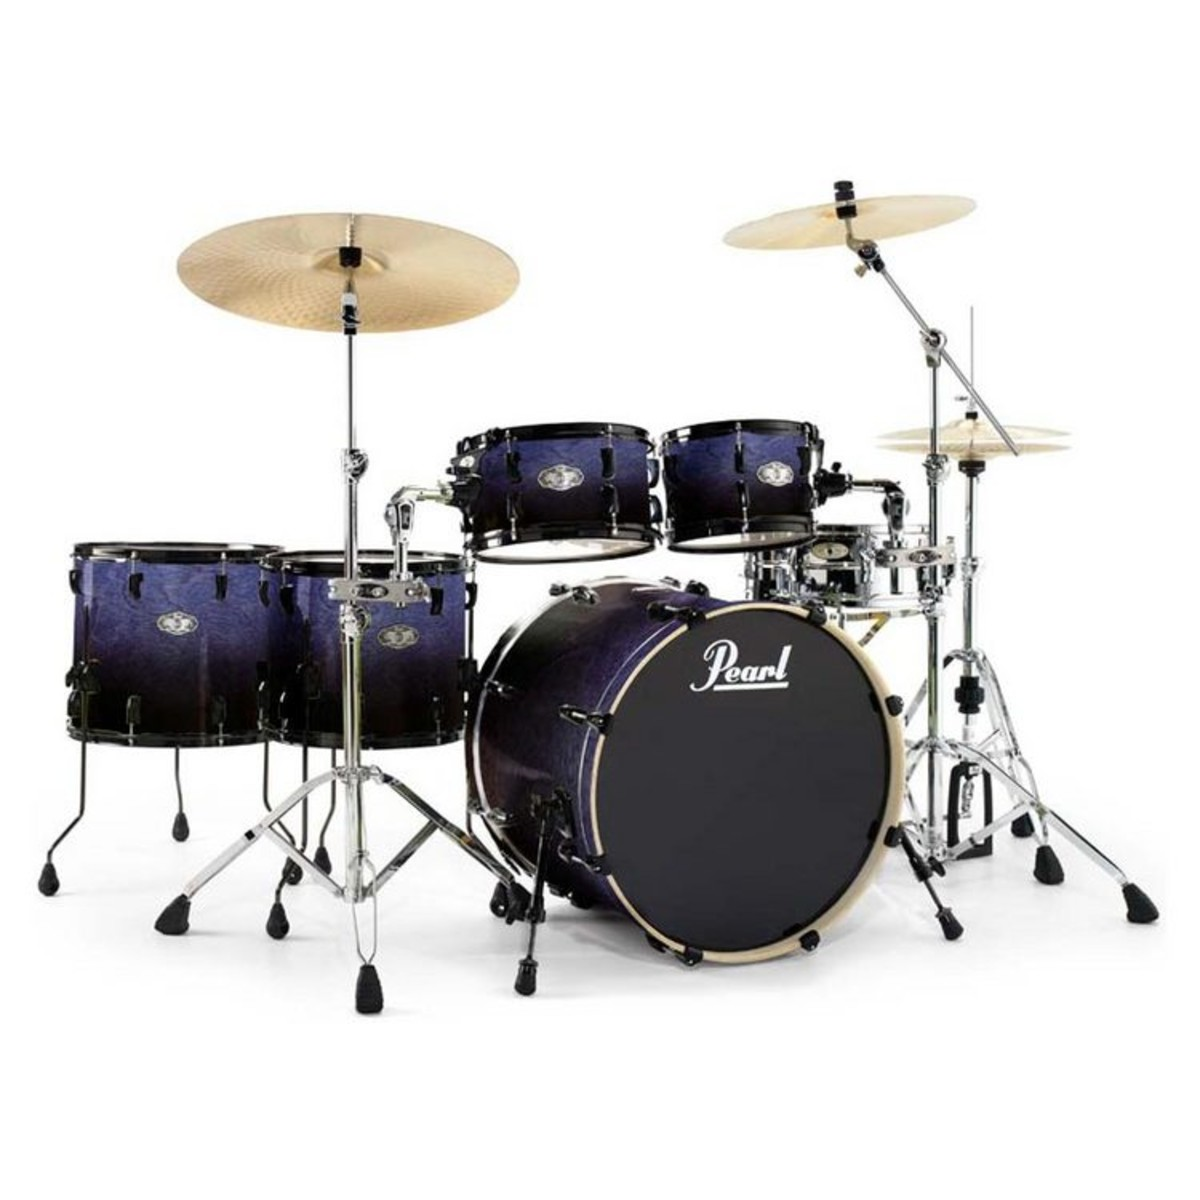 disc pearl vision vbx hyperdrive birch kit in concord fade limited edition at gear4music. Black Bedroom Furniture Sets. Home Design Ideas